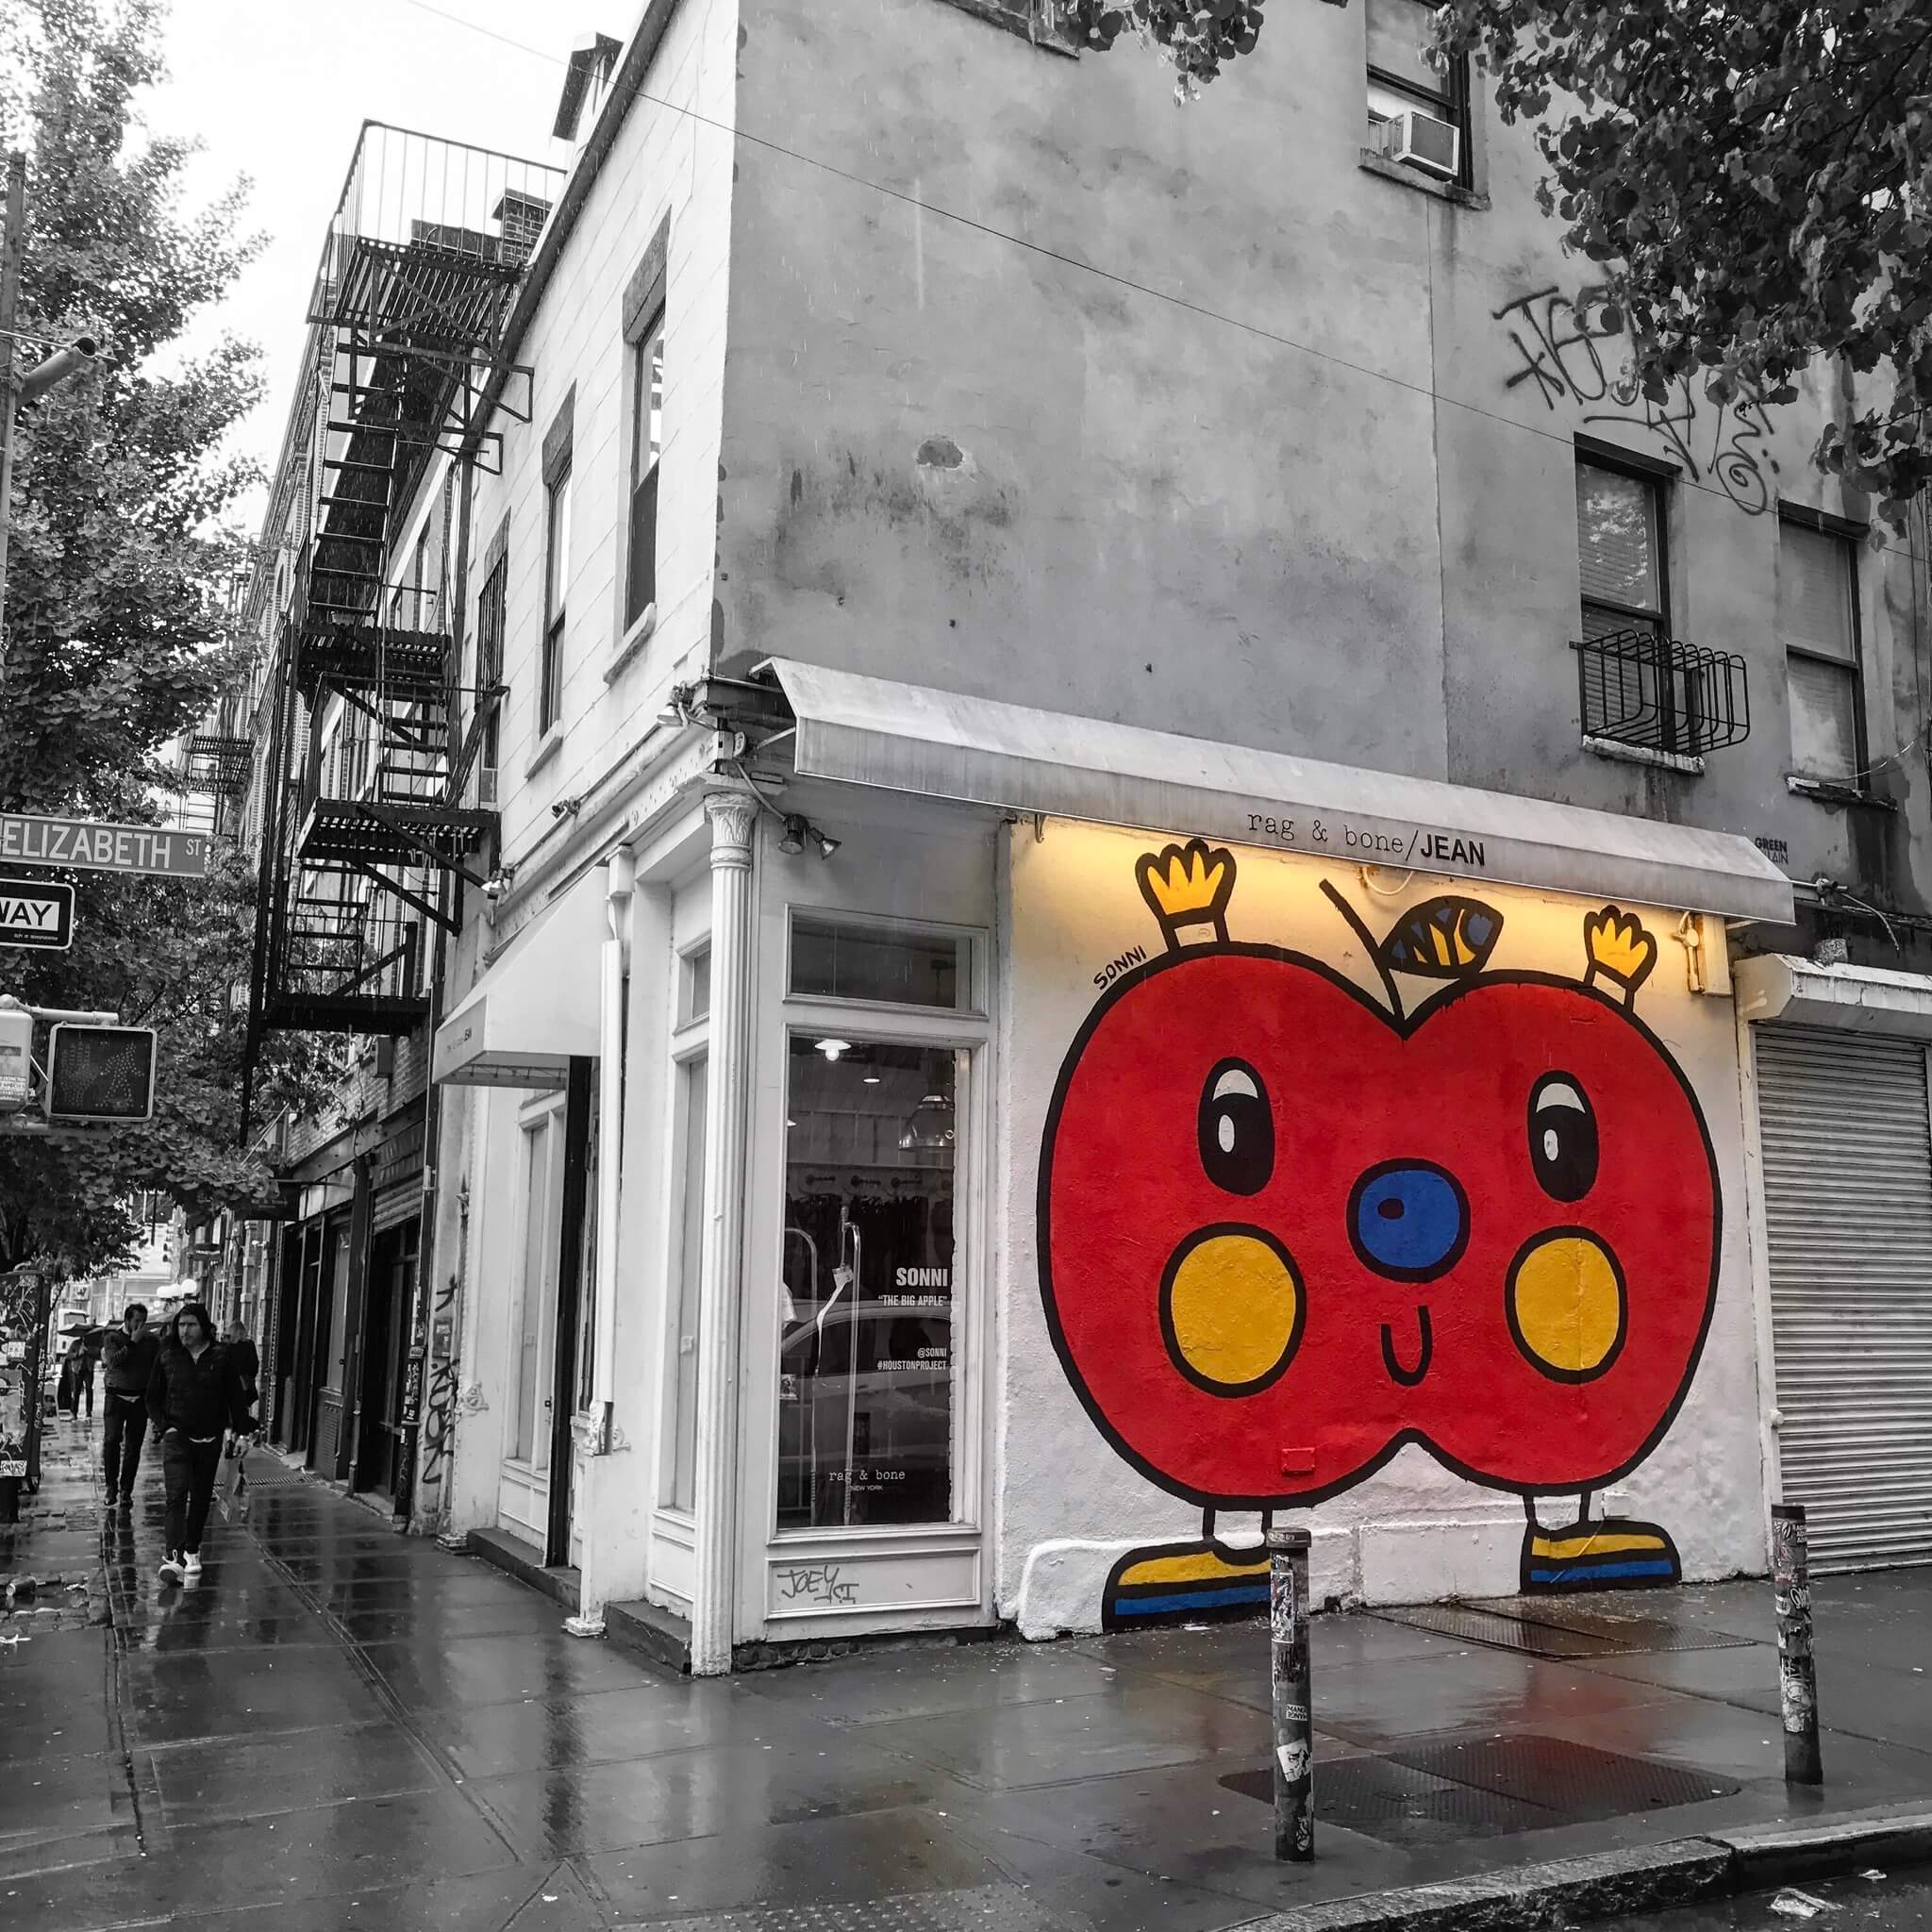 Monochrome with Jolly Red Apple Colour Pop - Street Art Photography by Sarah Sansom